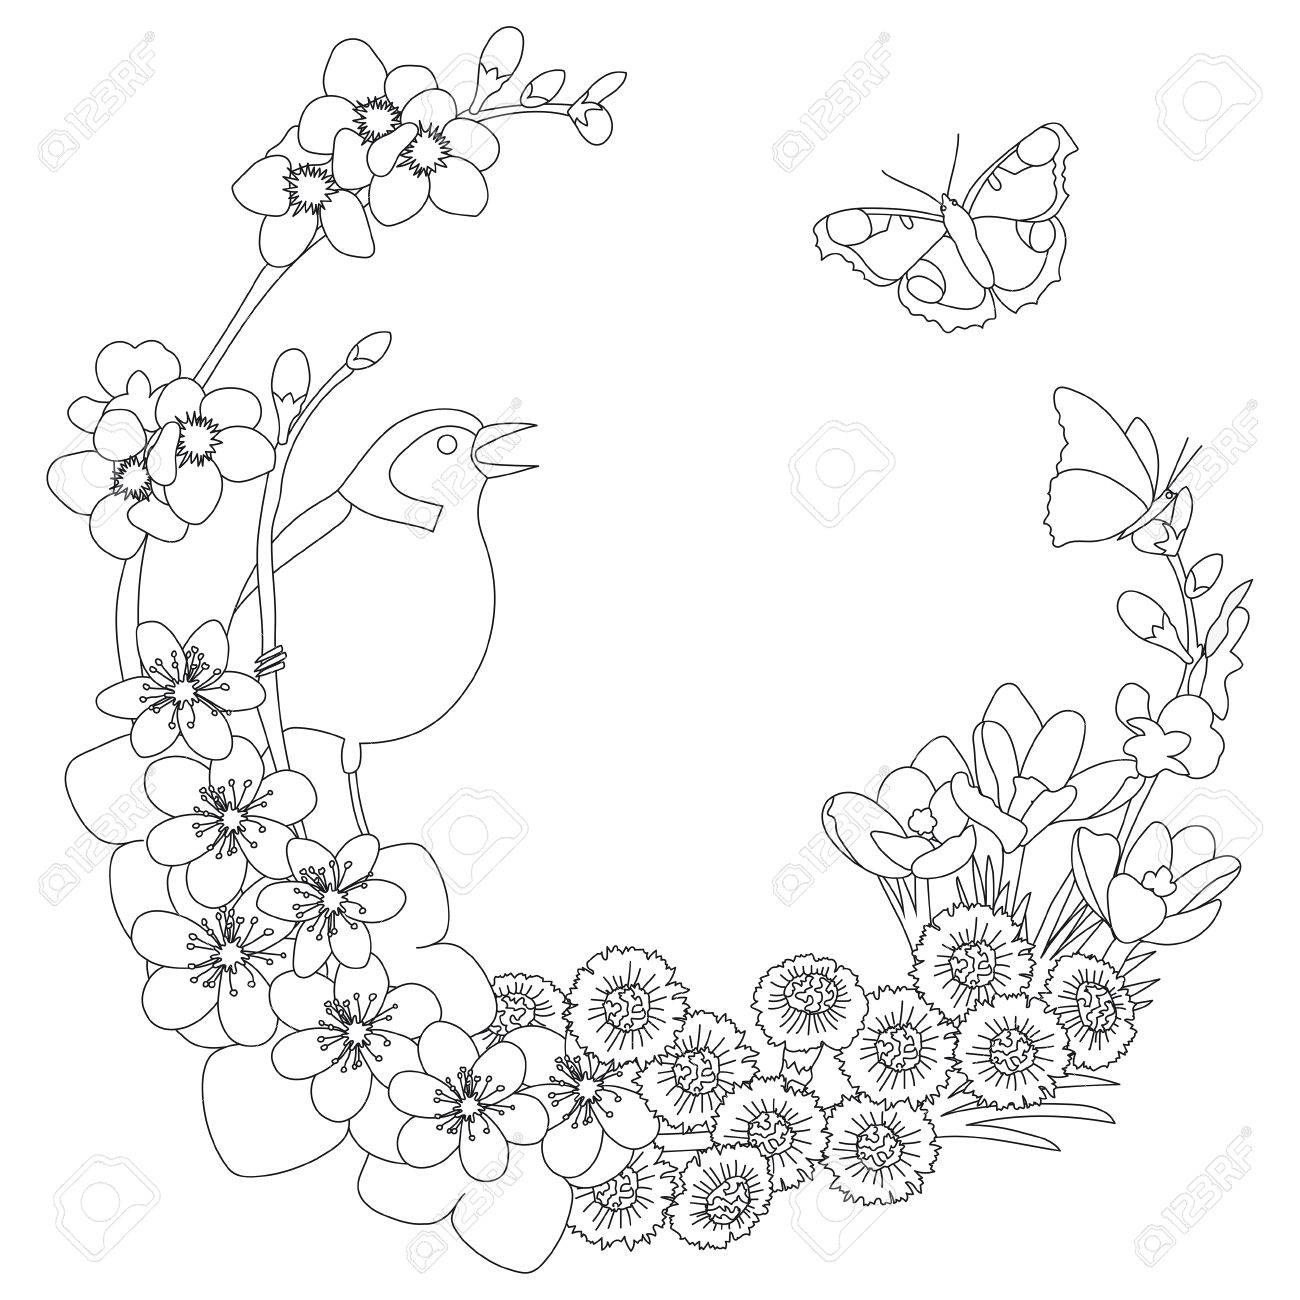 spring floral outline elegant round outline wreath coloring page decoration stock vector 84740701 - Wreath Coloring Page